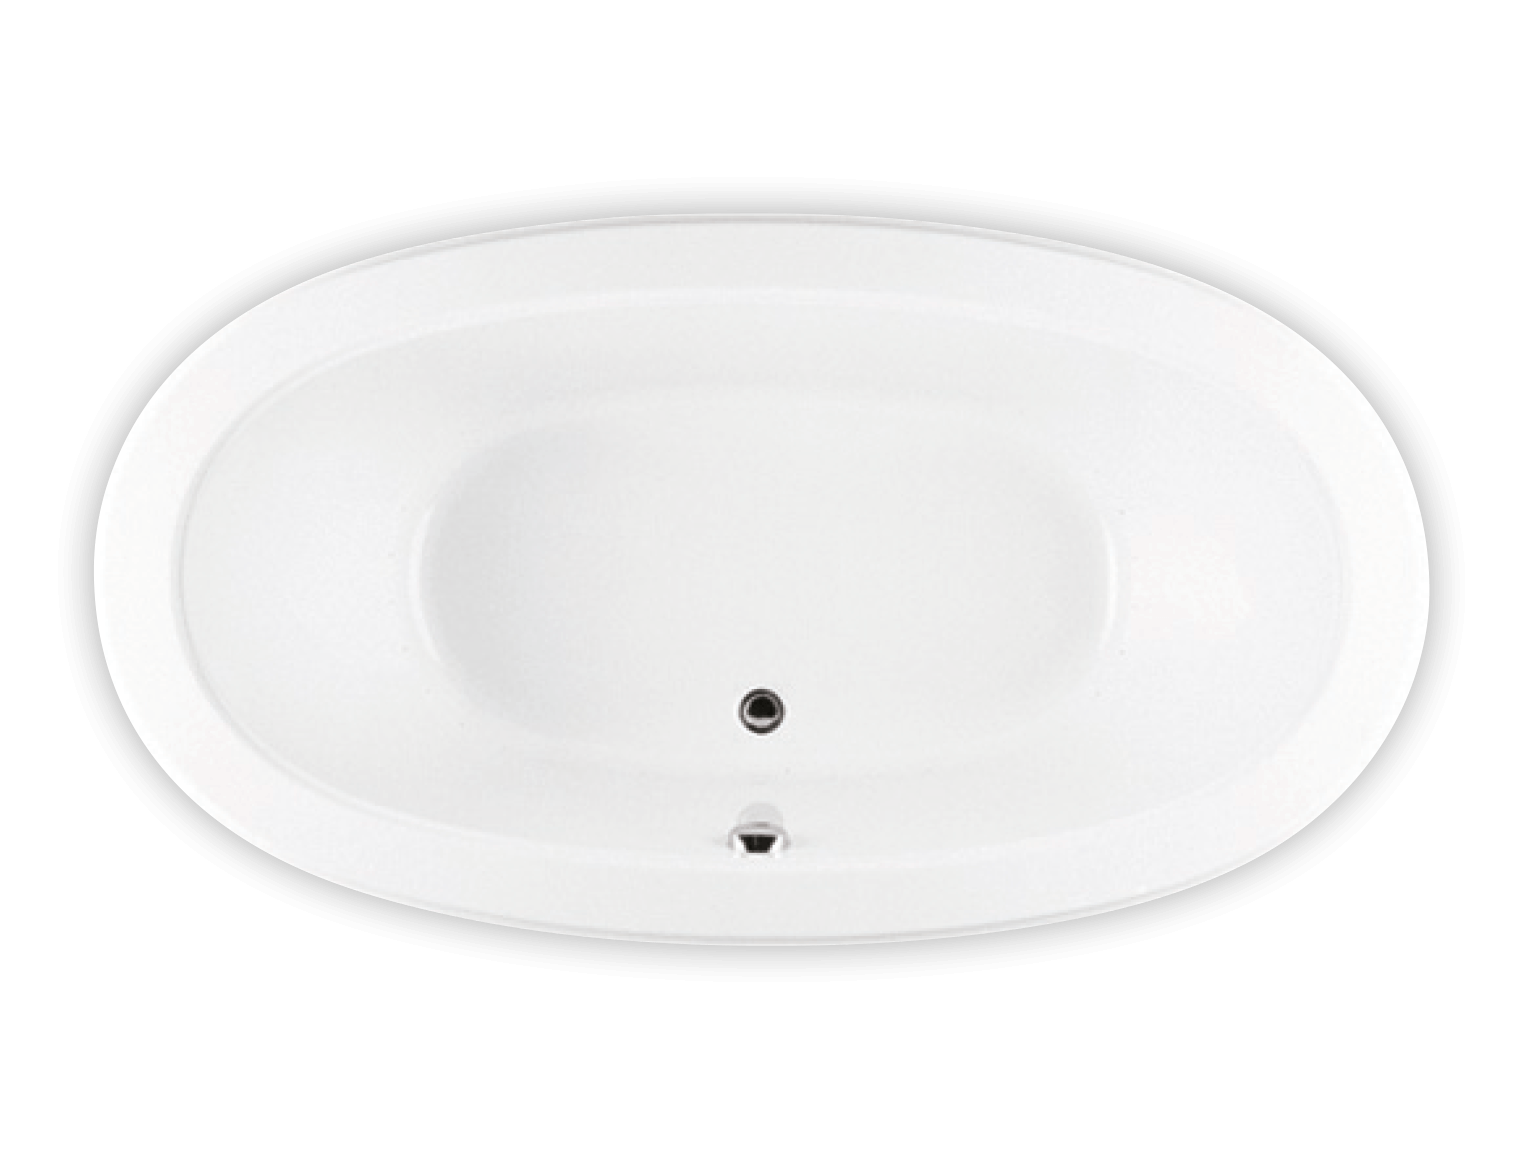 Bainultra Ellipse® 7240 two person large air jet bathtub for your modern bathroom